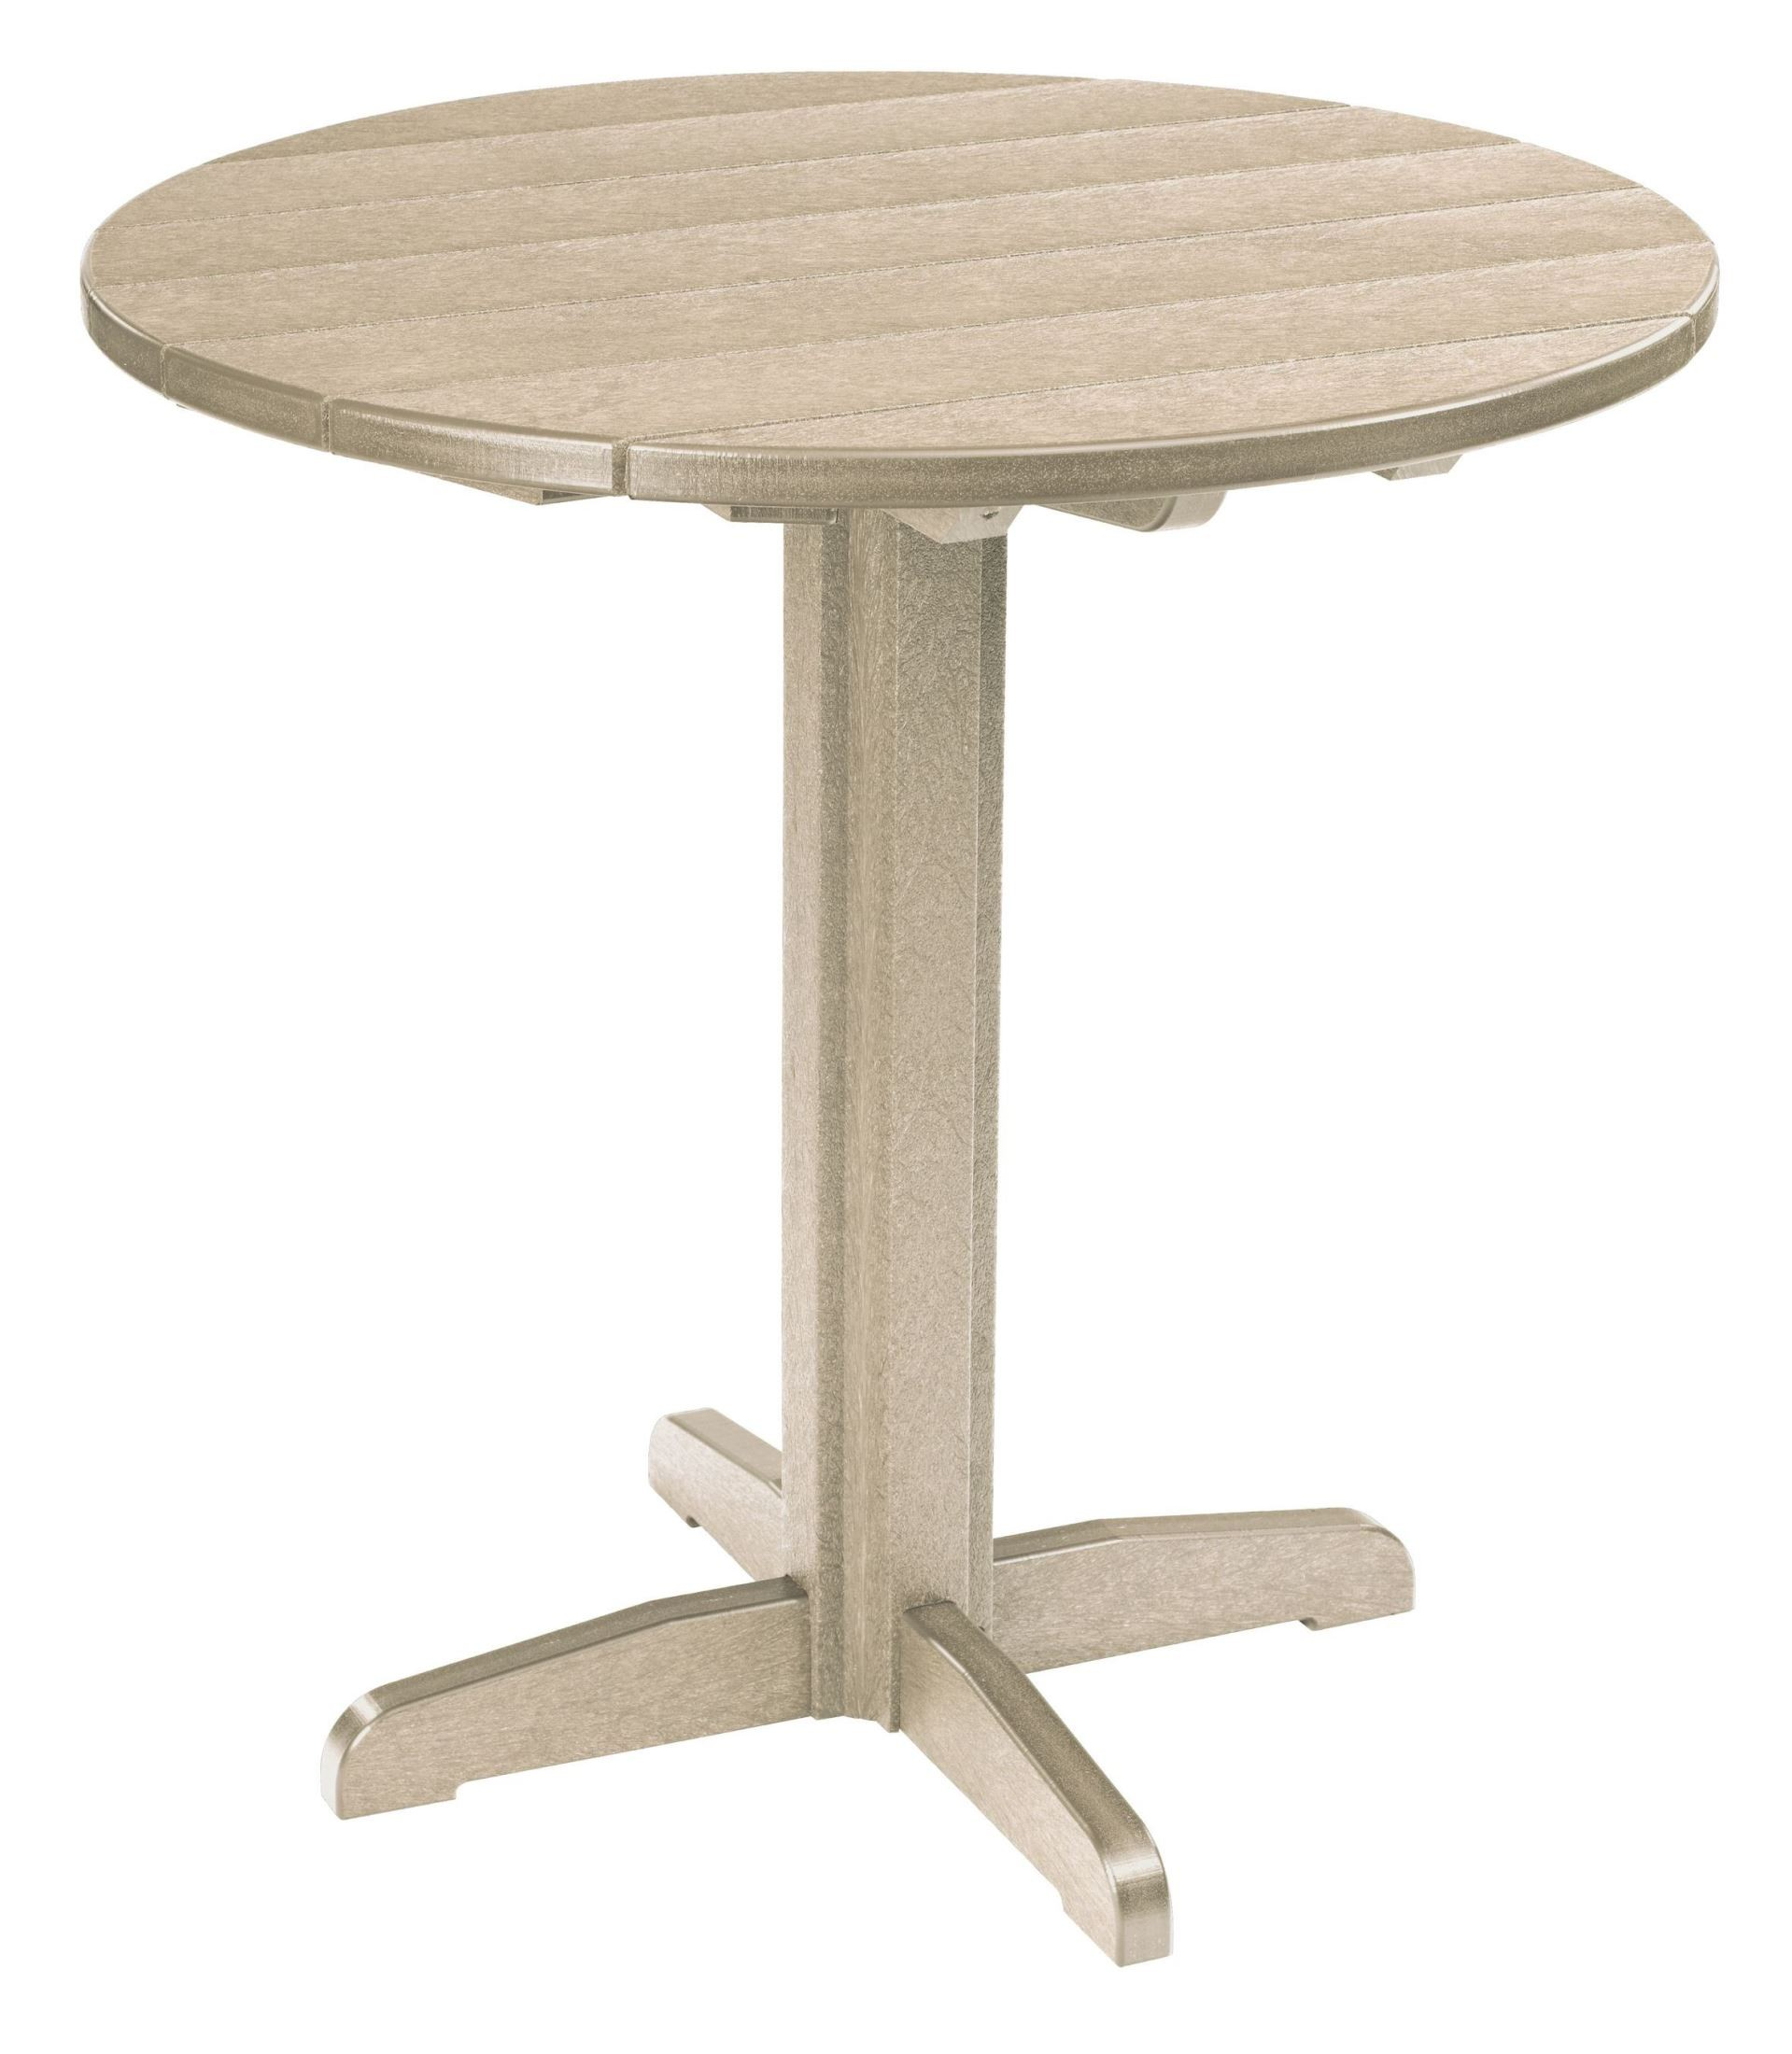 Generations Beige 37quot Round Pub Height Pedestal Table from  : tbt2307tb13tt02071 from colemanfurniture.com size 1919 x 2200 jpeg 334kB